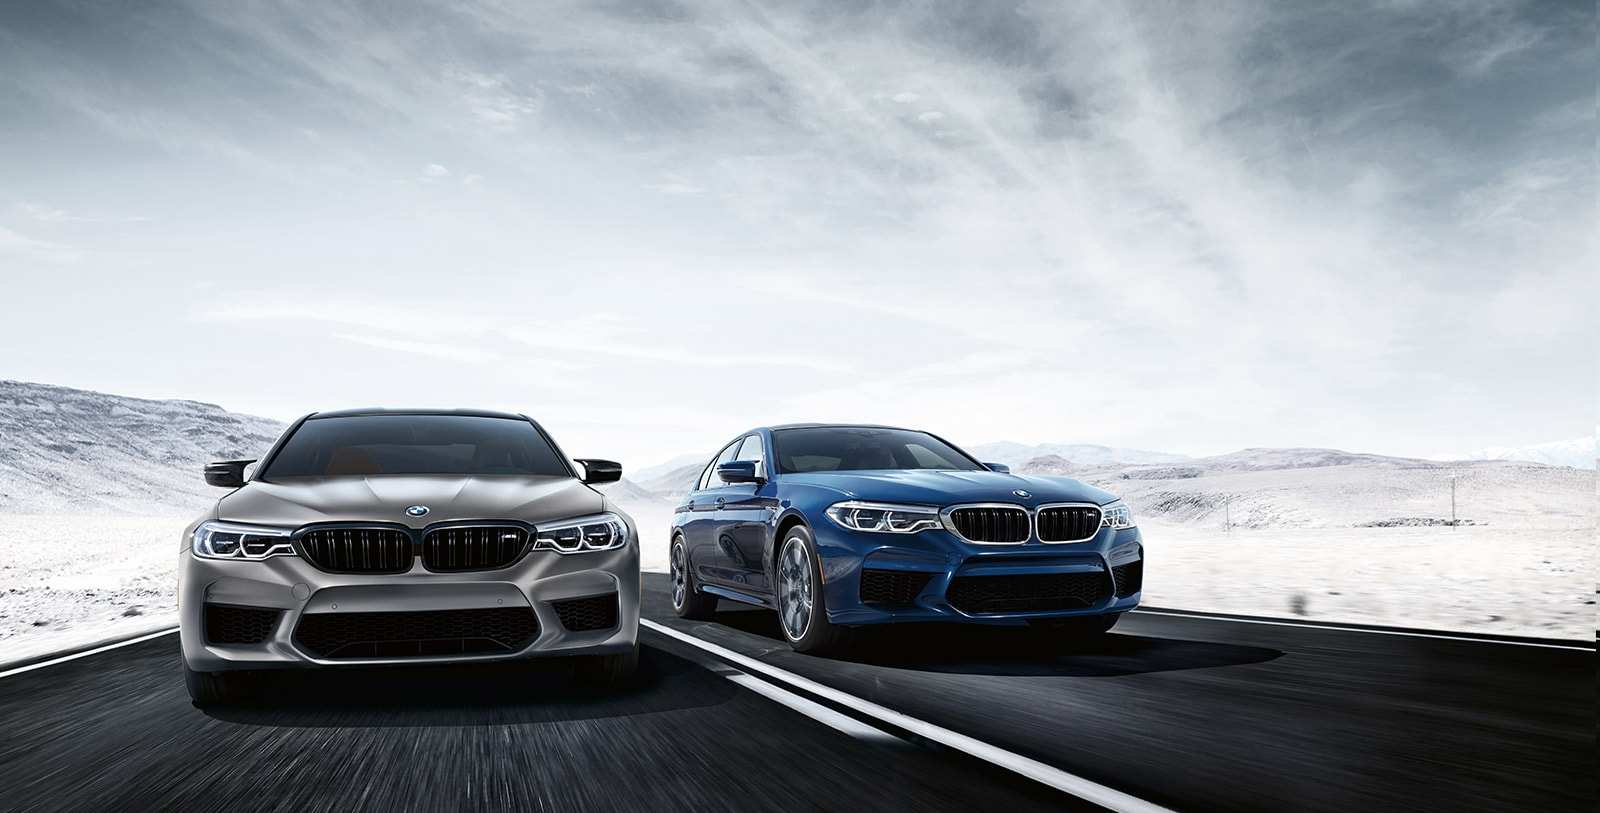 28 New 2020 BMW M5 Xdrive Awd Release Date